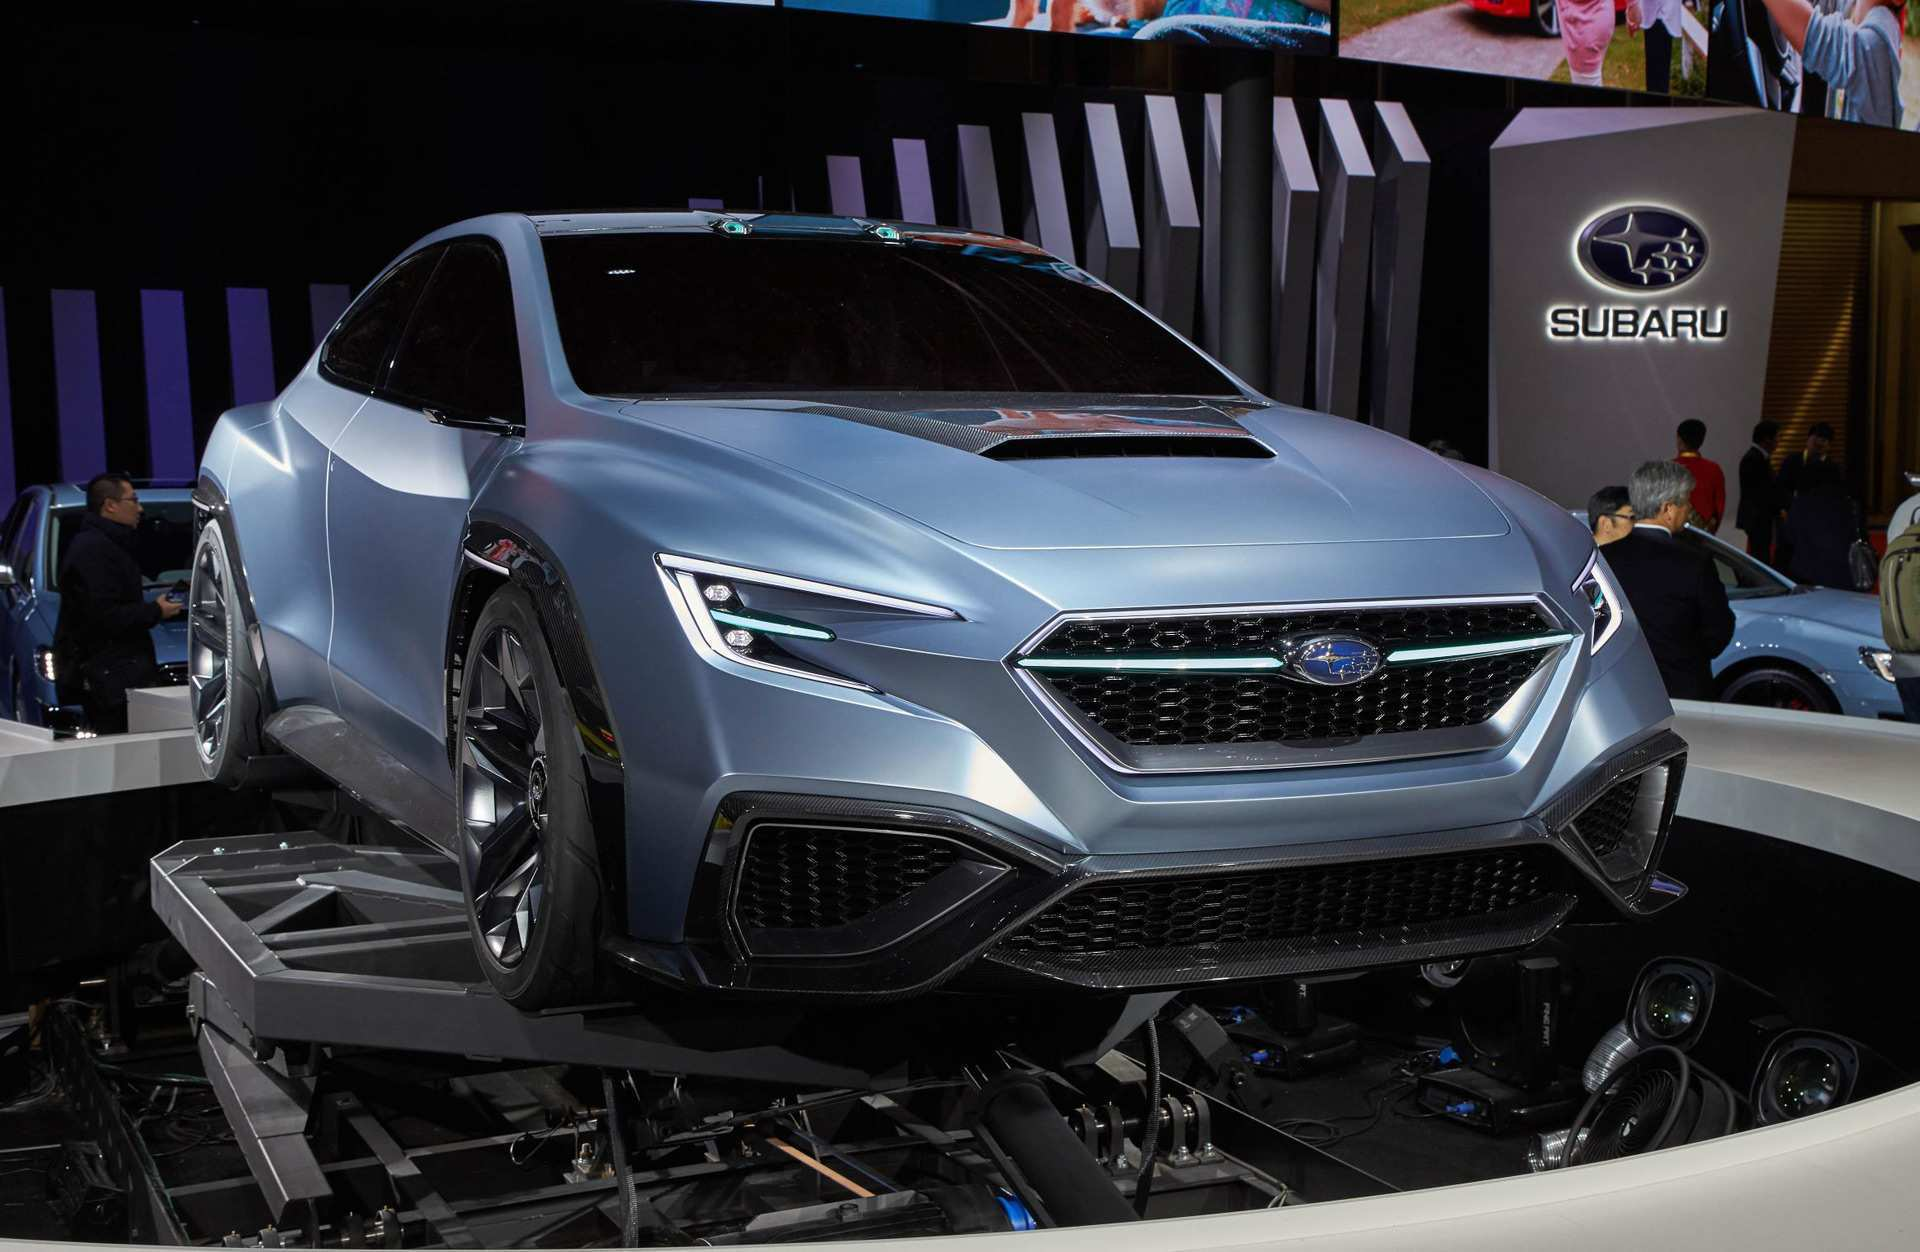 24 New Subaru Sti 2020 Rumors Price And Release Date